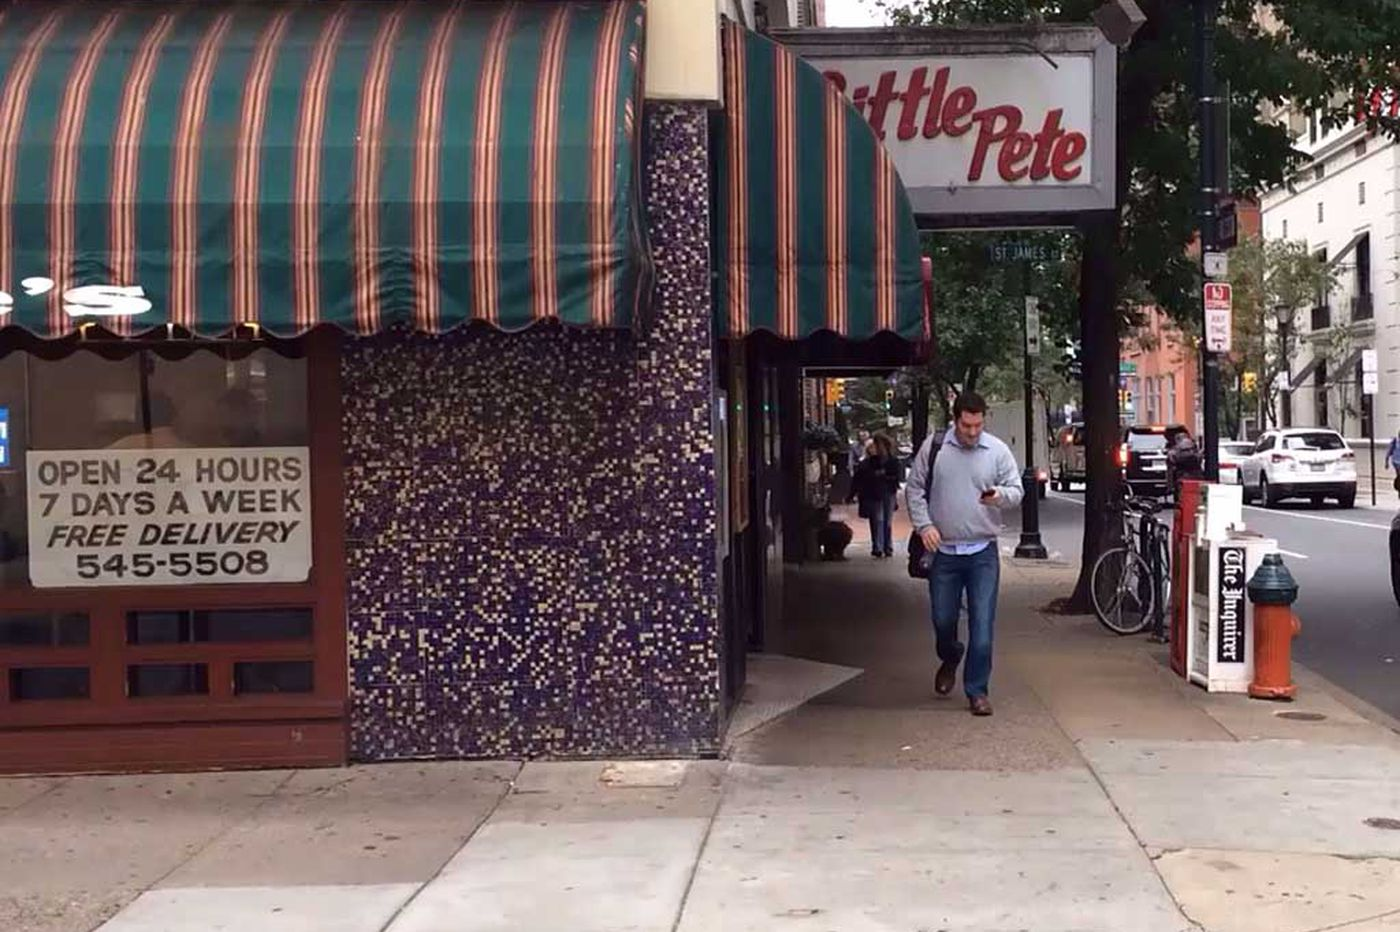 Hotel zoning delay spares Little Pete's - for now